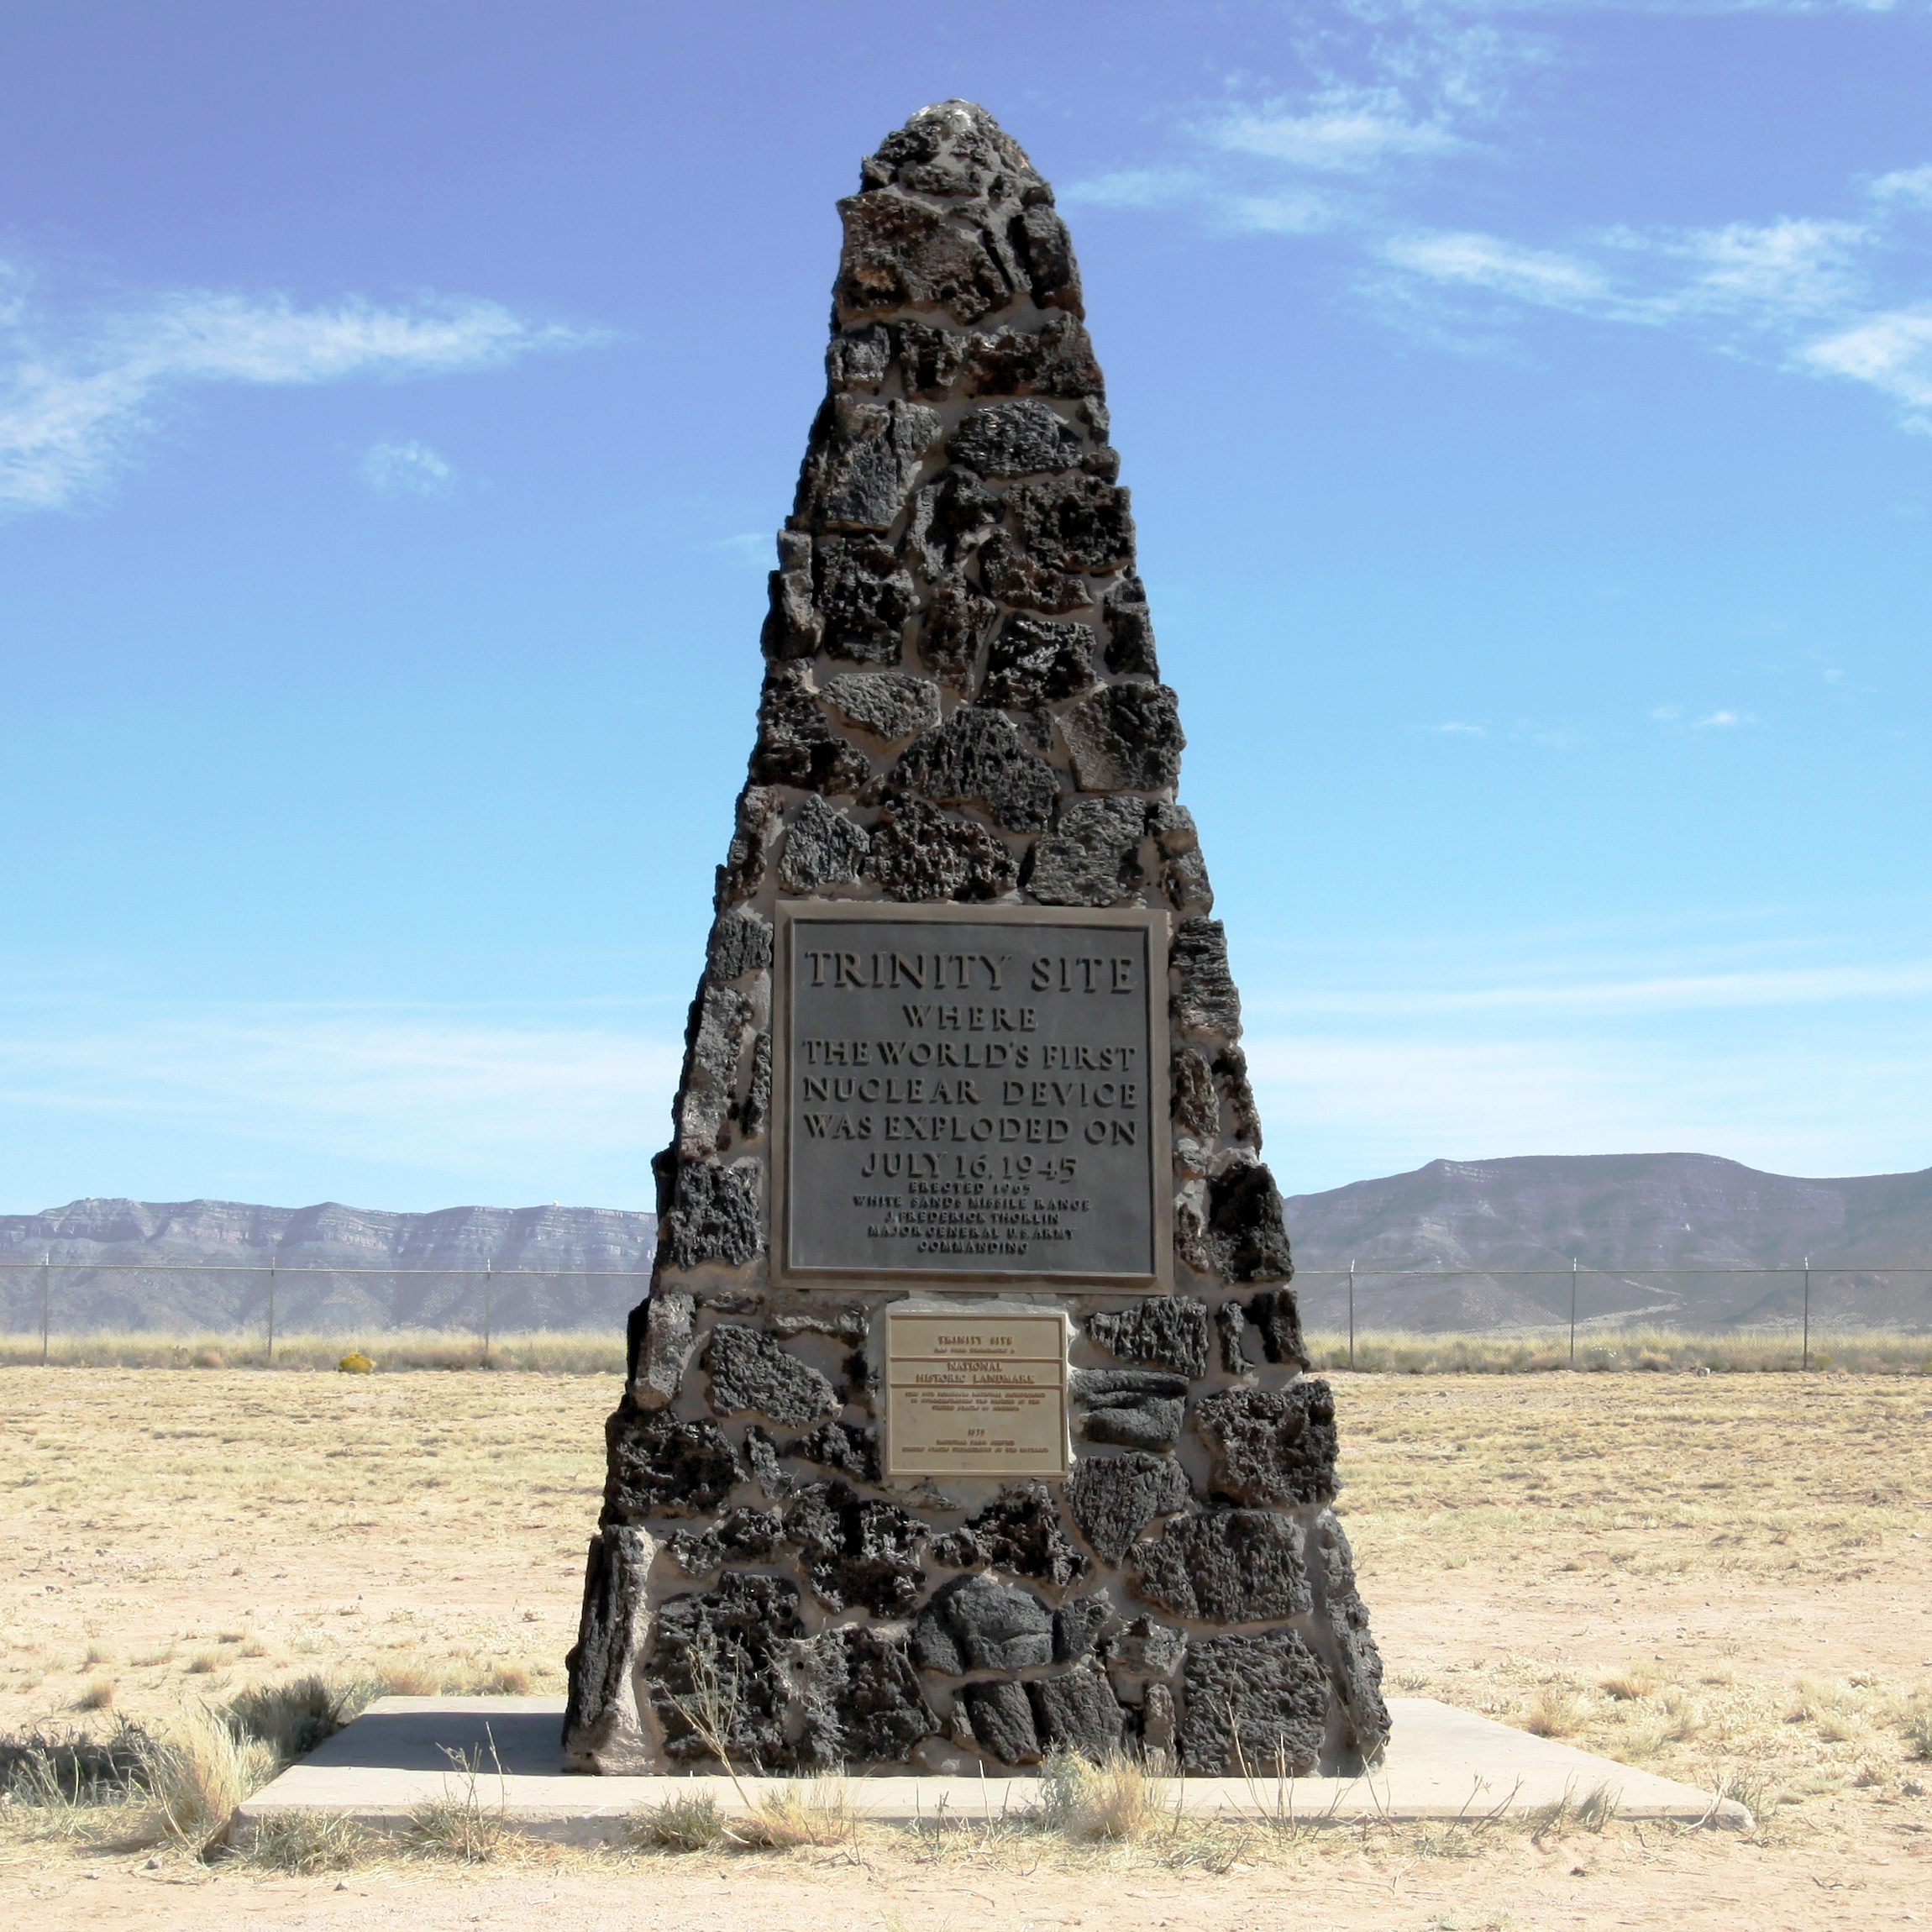 "The obelisk marks the exact location where the first atomic bomb exploded.  The inscription reads, ""The Trinity Site Where the World's First Nuclear Device was Exploded on July 16, 1945, Erected 1965."" (Courtesy of flickr.com)"